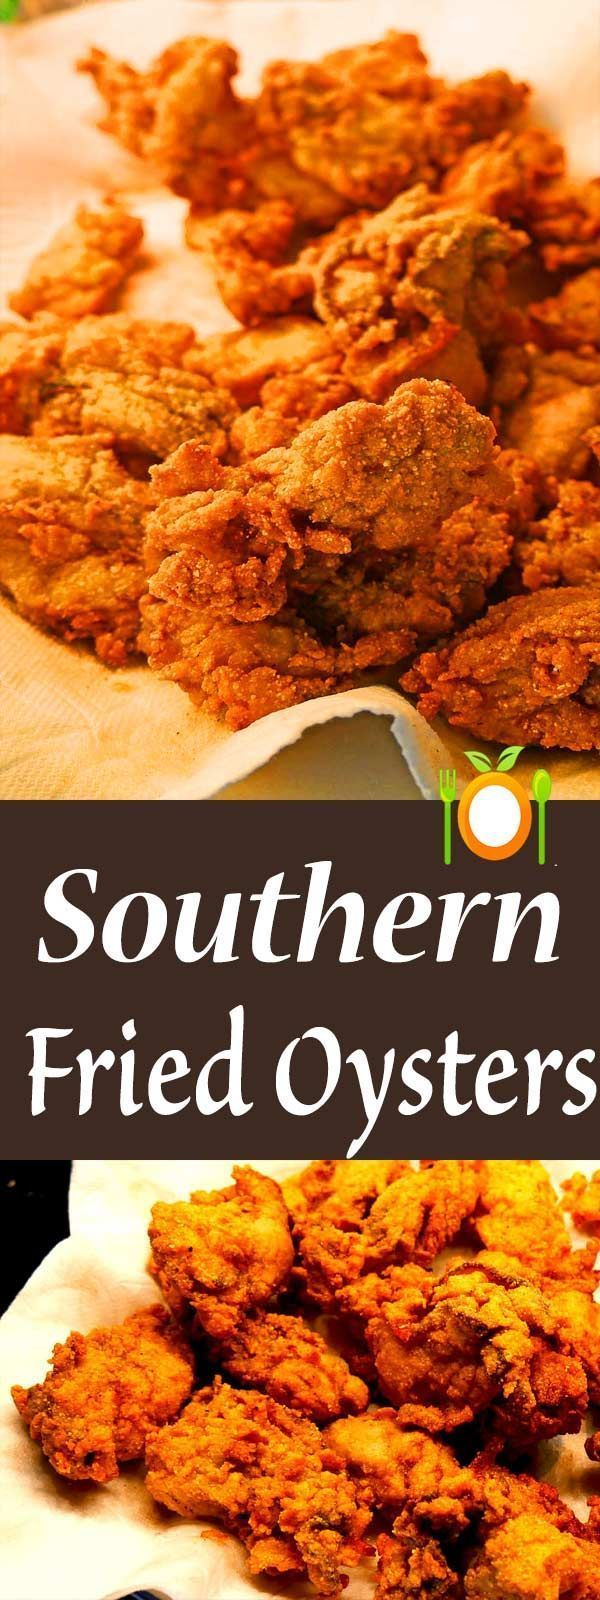 Southern Fried OystersI love oysters. Fried Oysters, Oysters Rockefeller, Grill Oysters, Smoked Oysters…   List goes on and on…Yet, I have to say Southern Fried Oysters are the winner in my book and every other a very close second https://www.butter-n-thyme.com